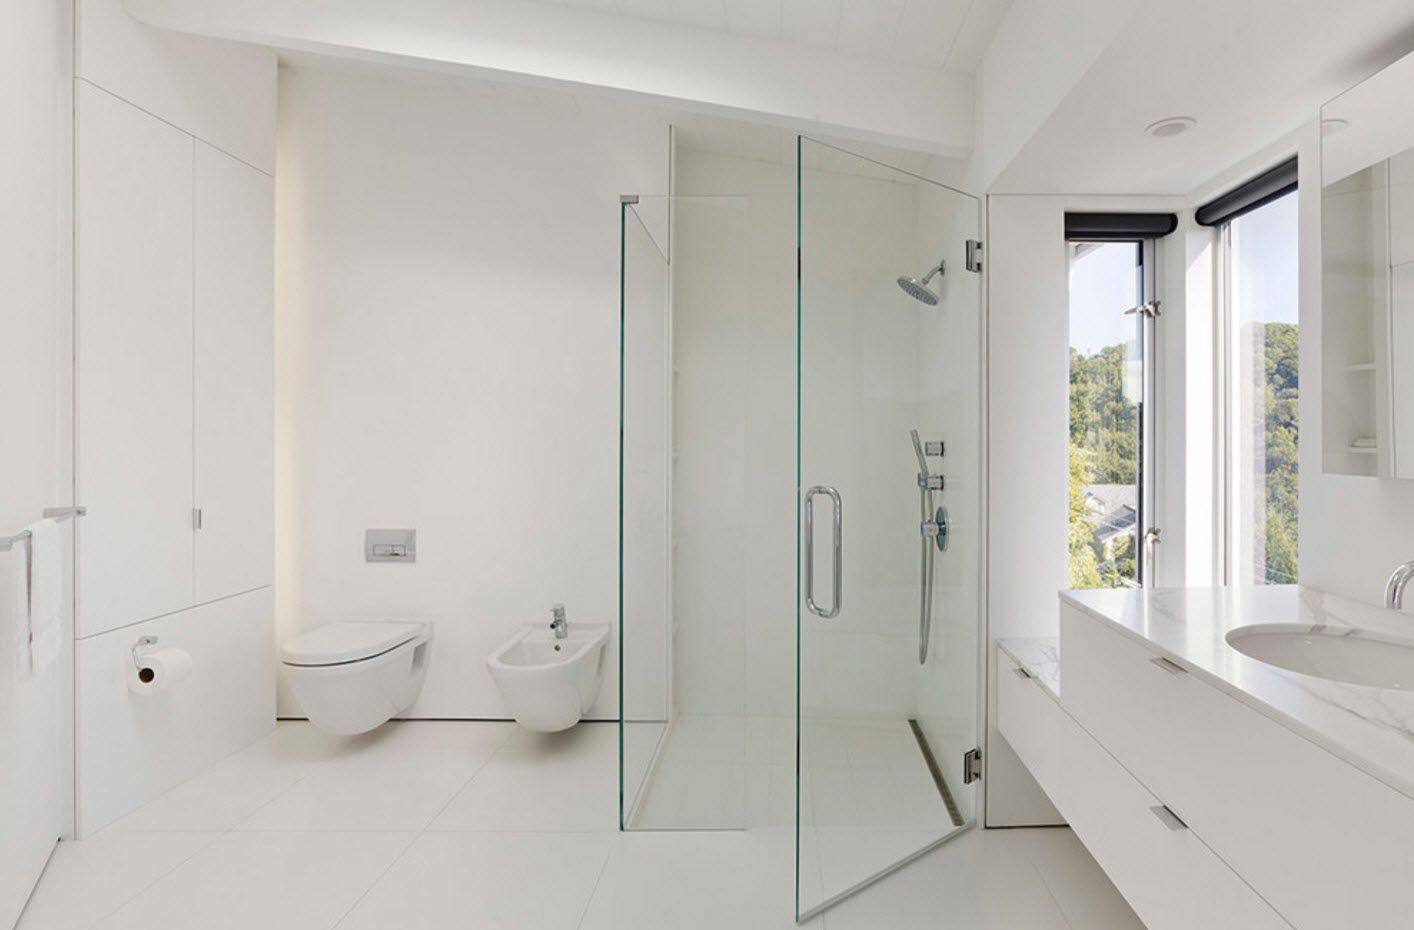 Totally white minimalistic bathroom design with glass shower cabin